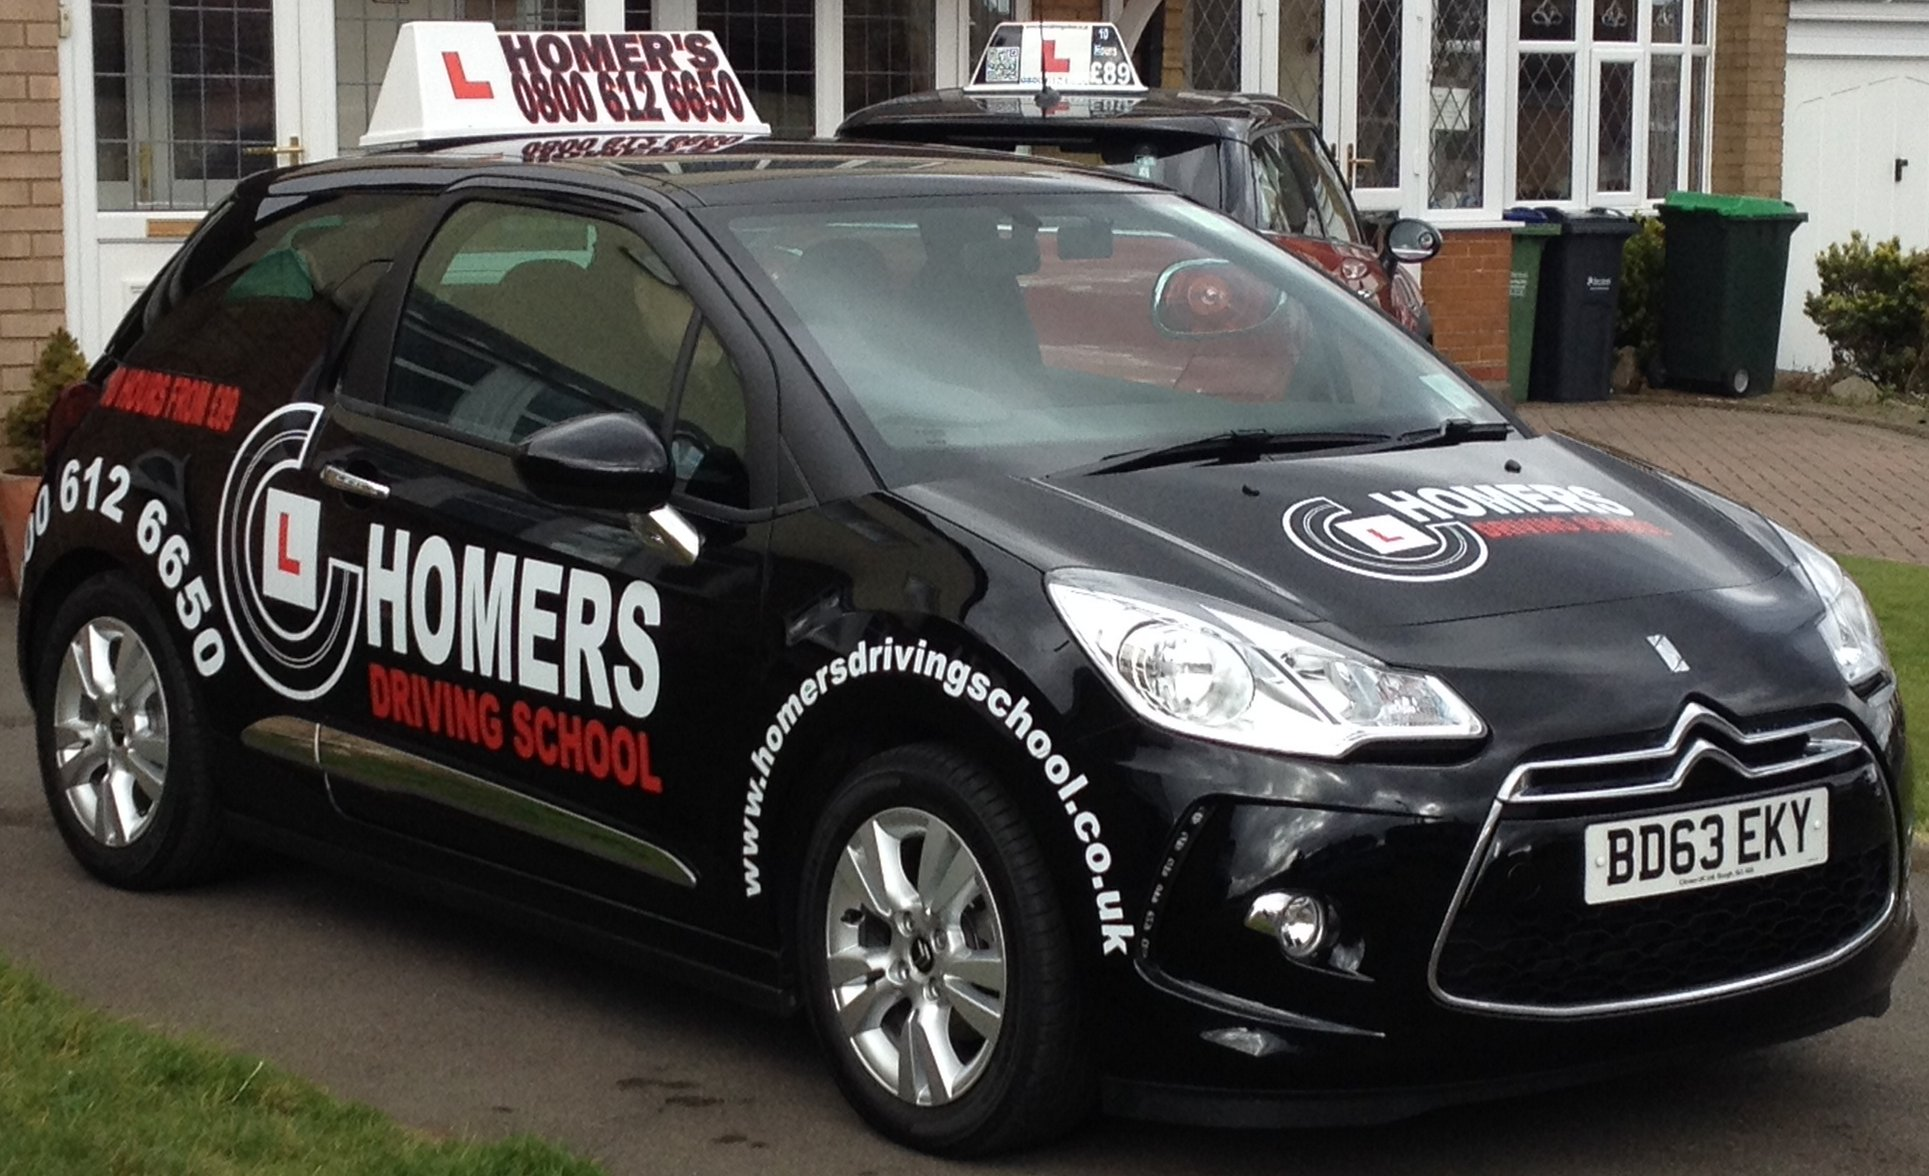 Homers Driving School - Tuition Car